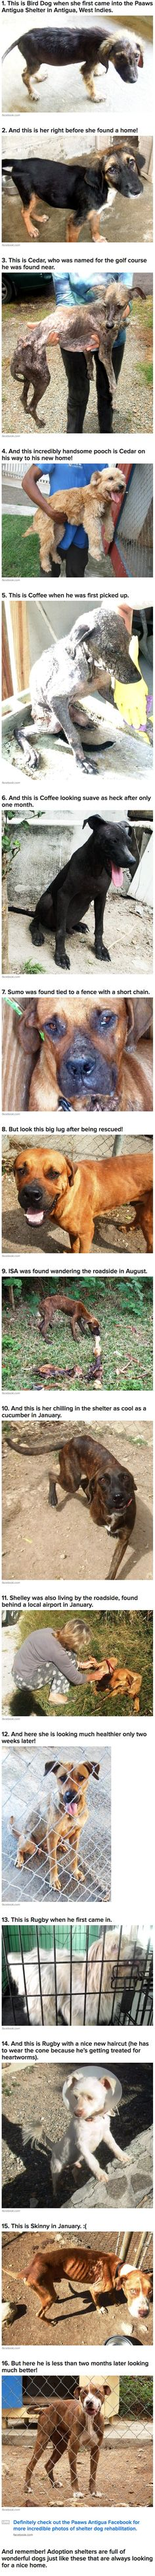 From :-( To :-D This is what your love can do. Adopt a Pet, you won't regret it, honest.